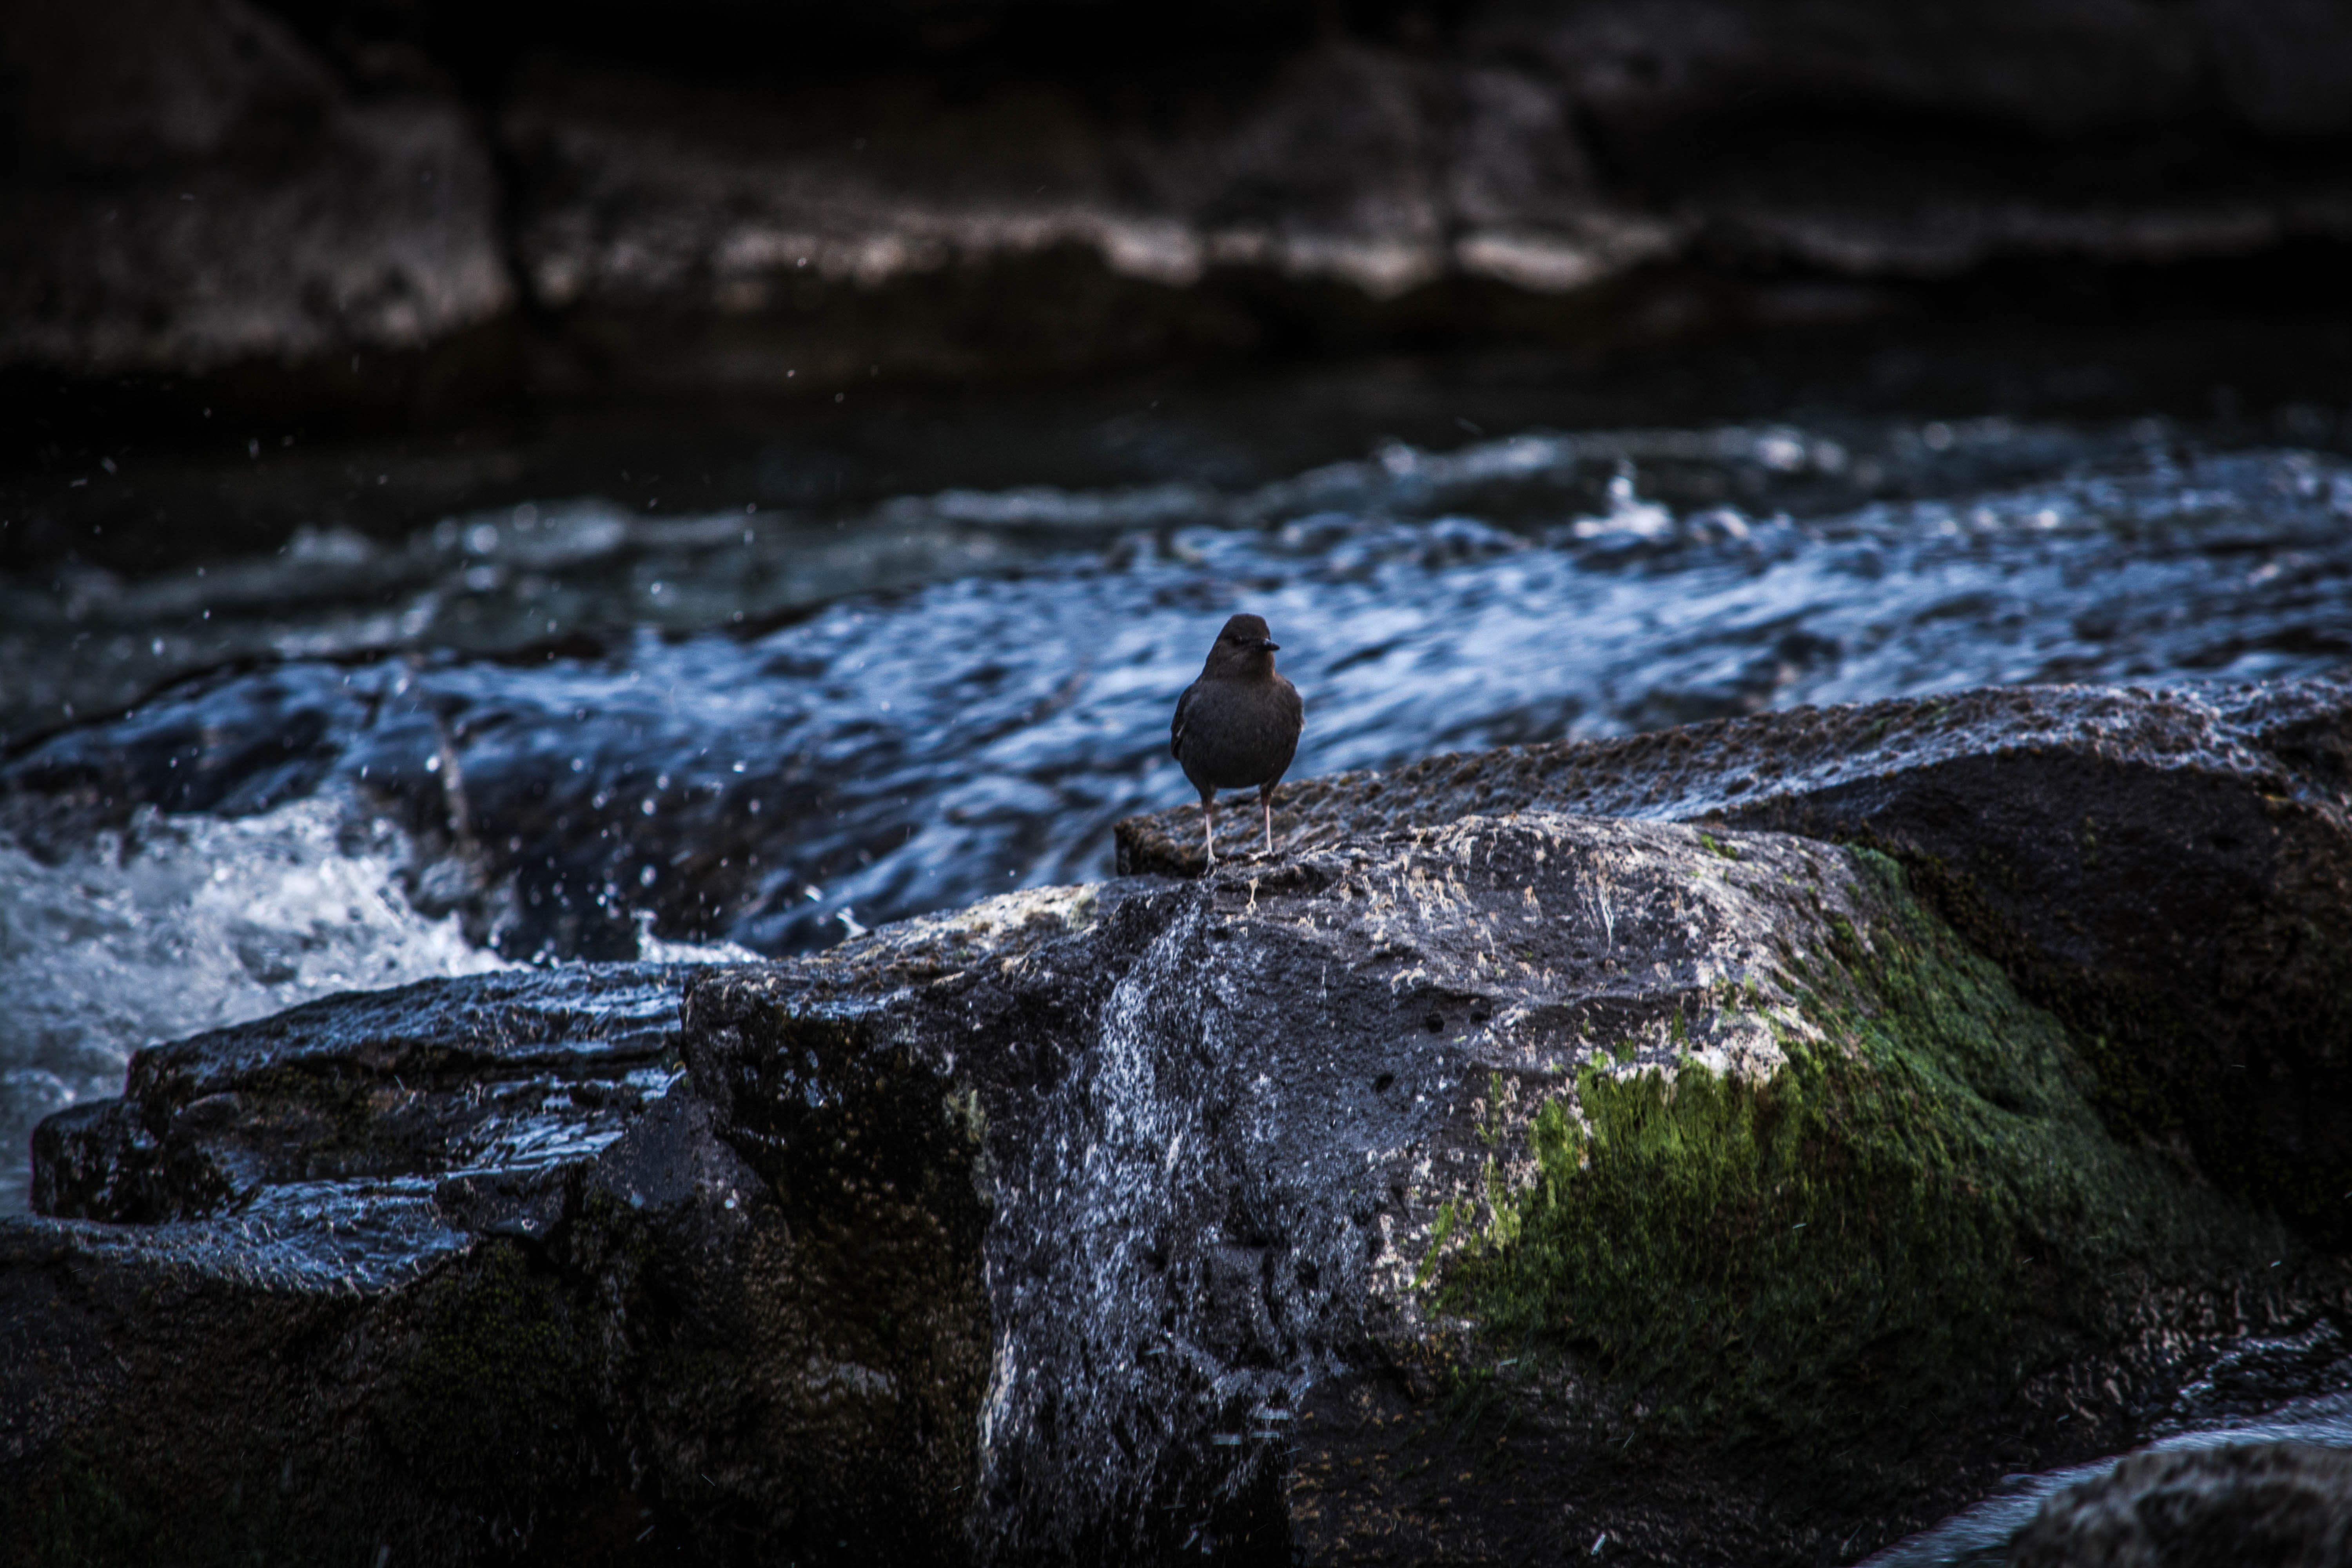 Free stock photo of bird, water, rocks, animal